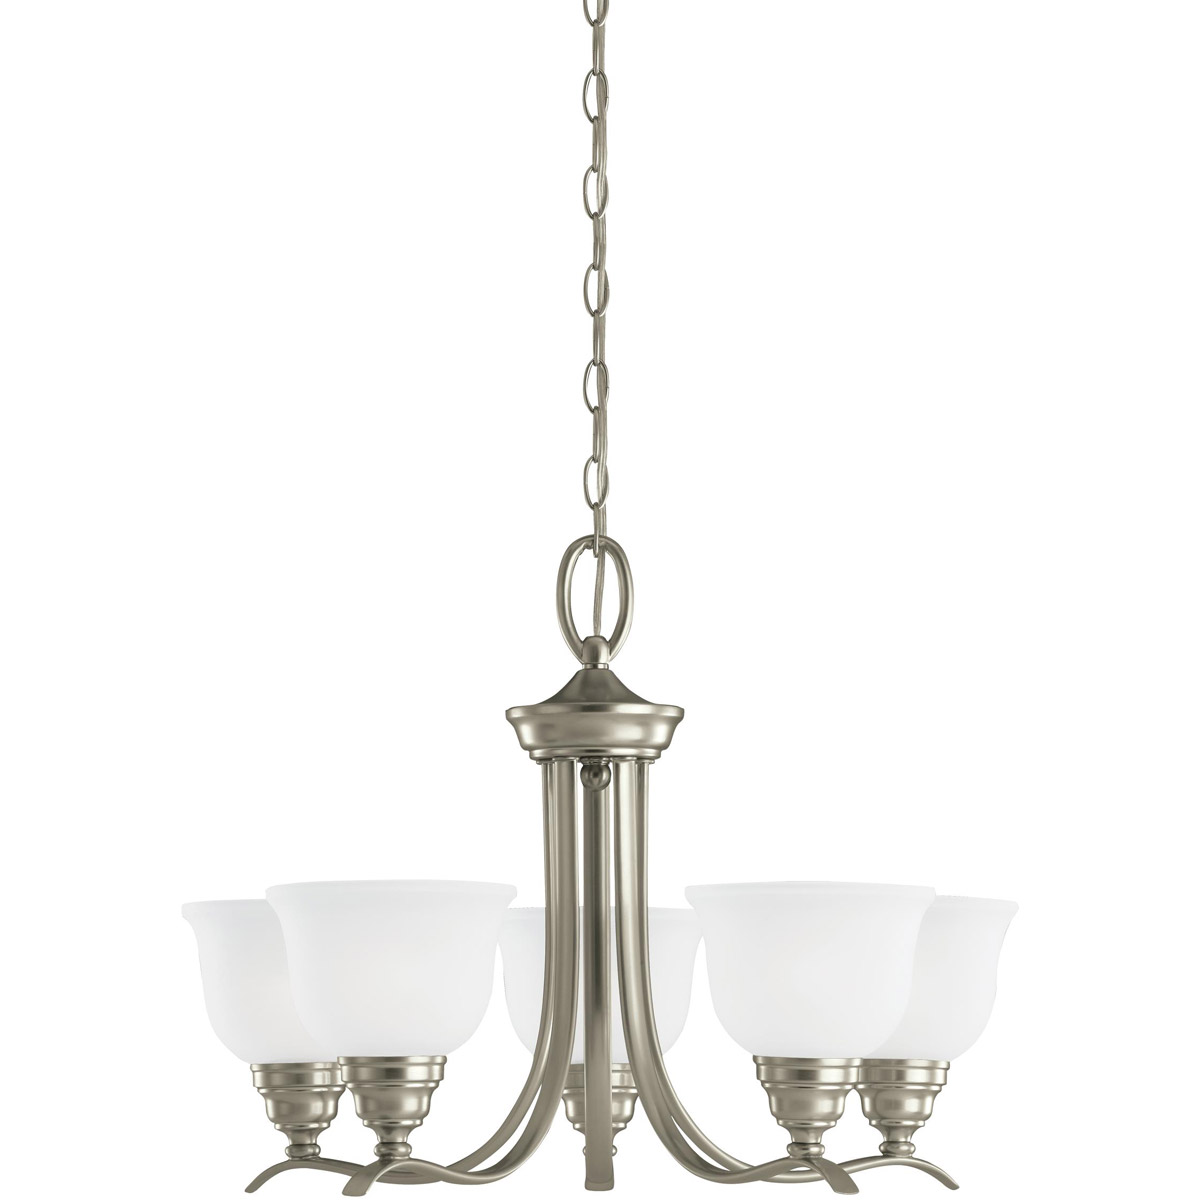 Sea Gull 31626-962 Wheaton 5 Light 24 inch Brushed Nickel Chandelier Ceiling Light in Standard photo